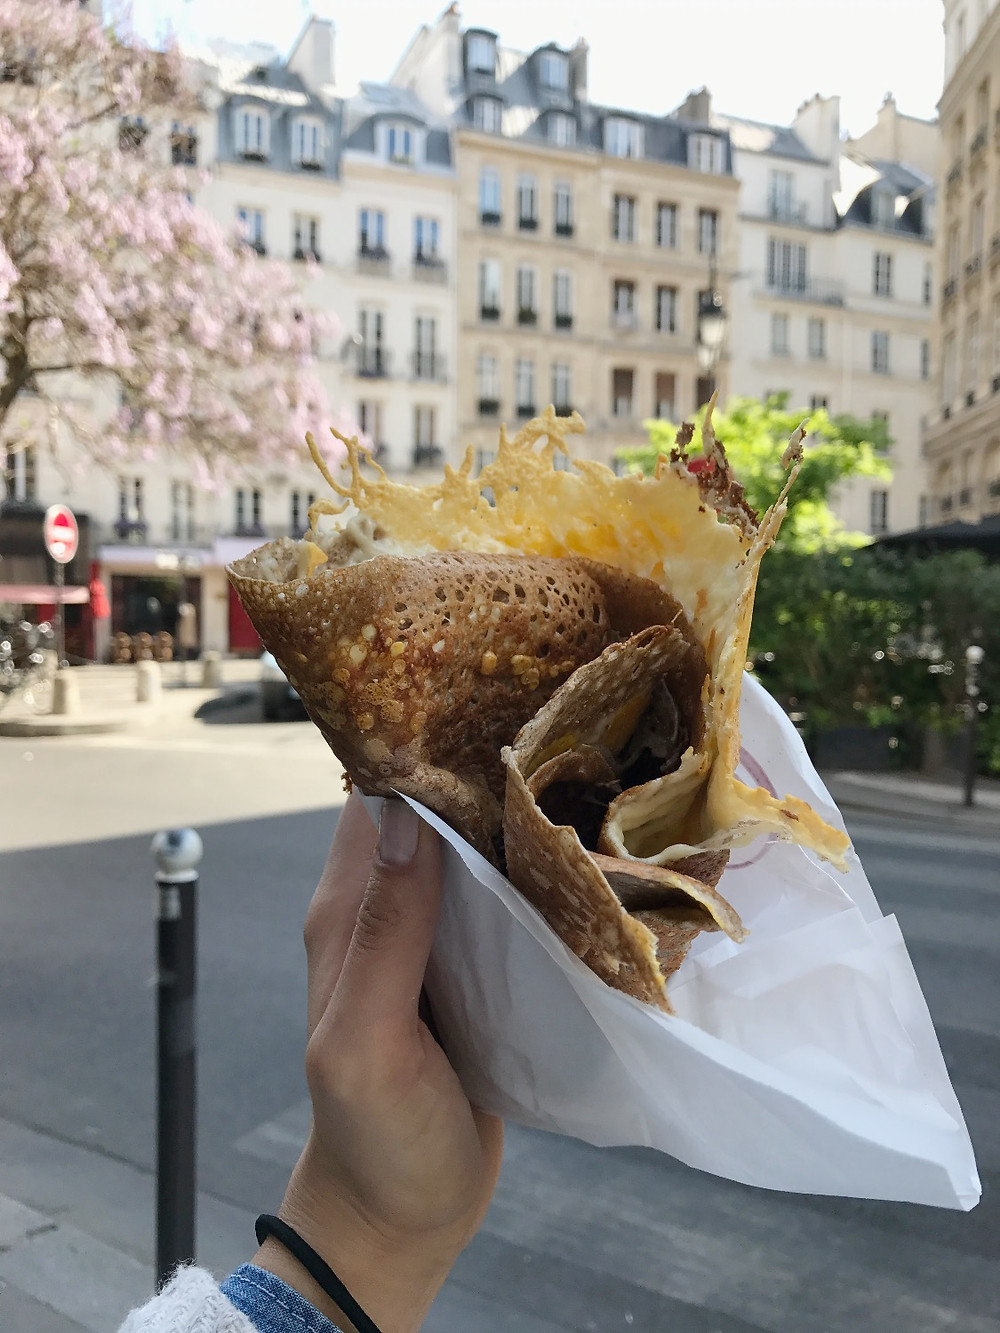 Crepes for lunch